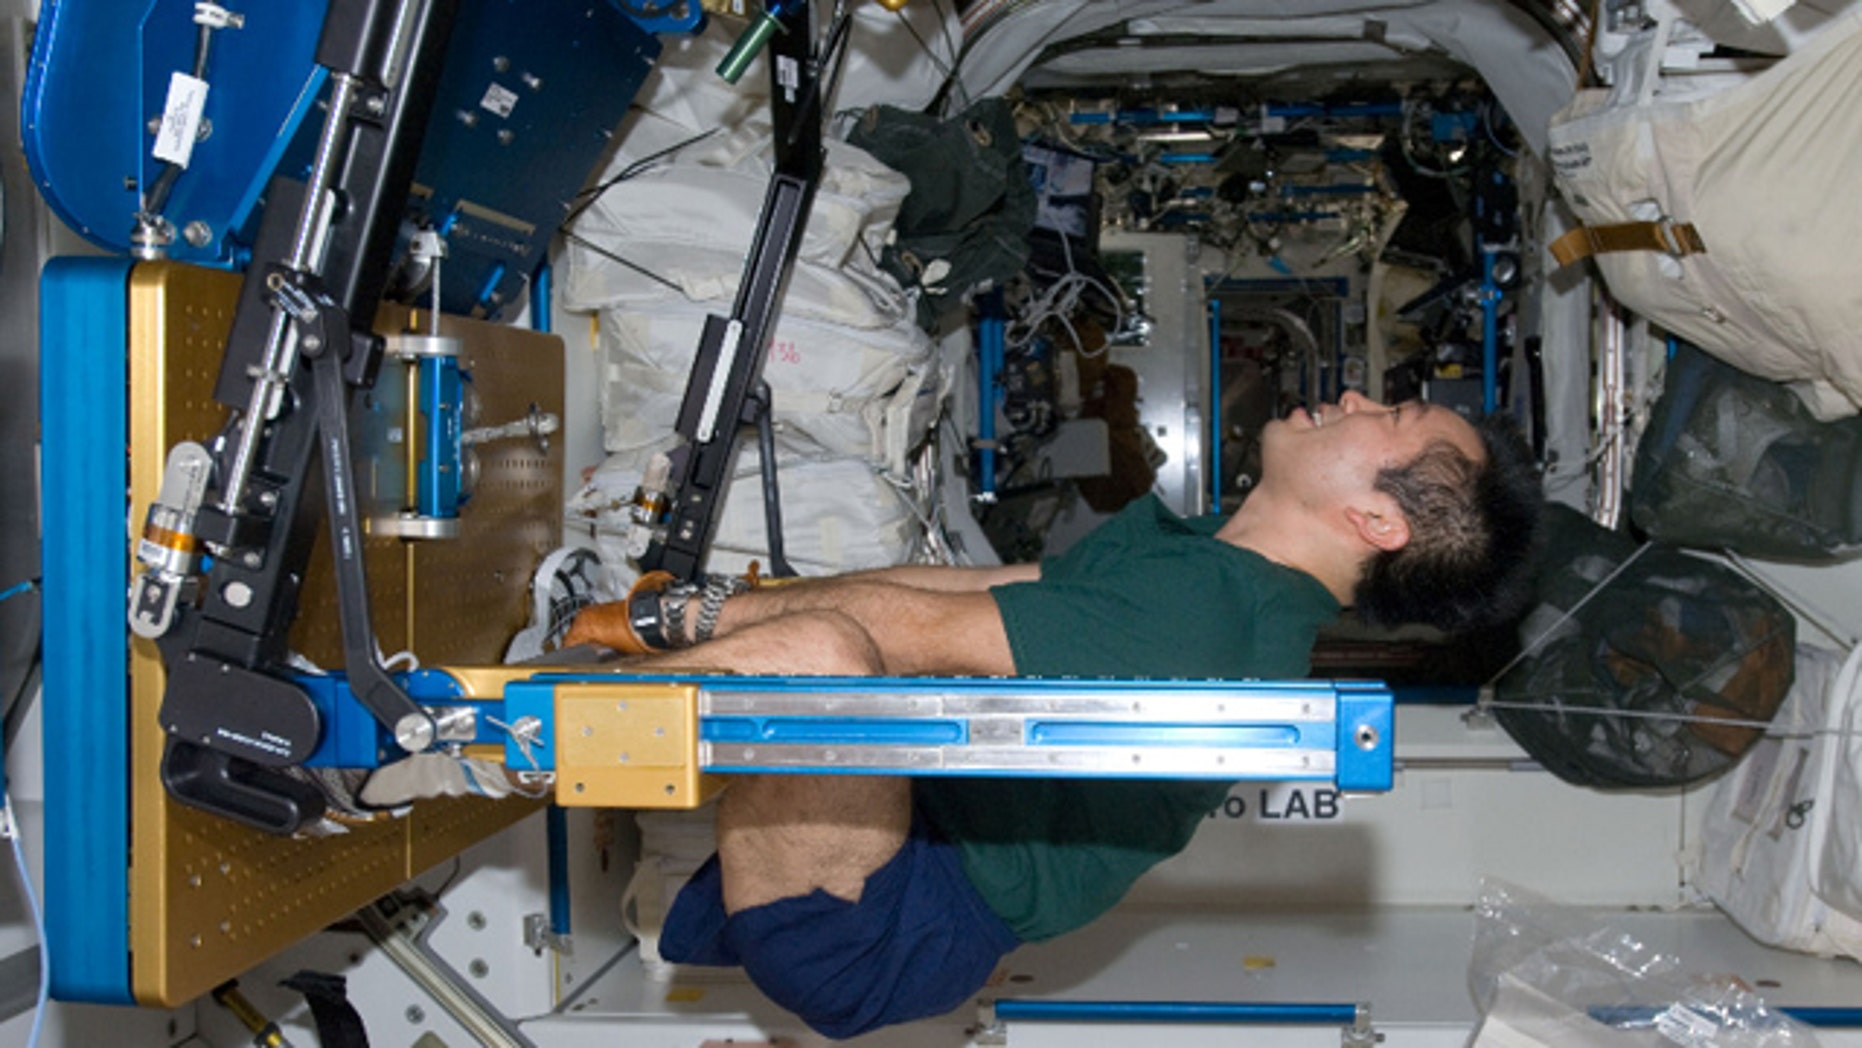 Japan Aerospace Exploration Agency astronaut Koichi Wakata exercises using the Advanced Resistive Exercise Device (ARED) in the International Space Station.